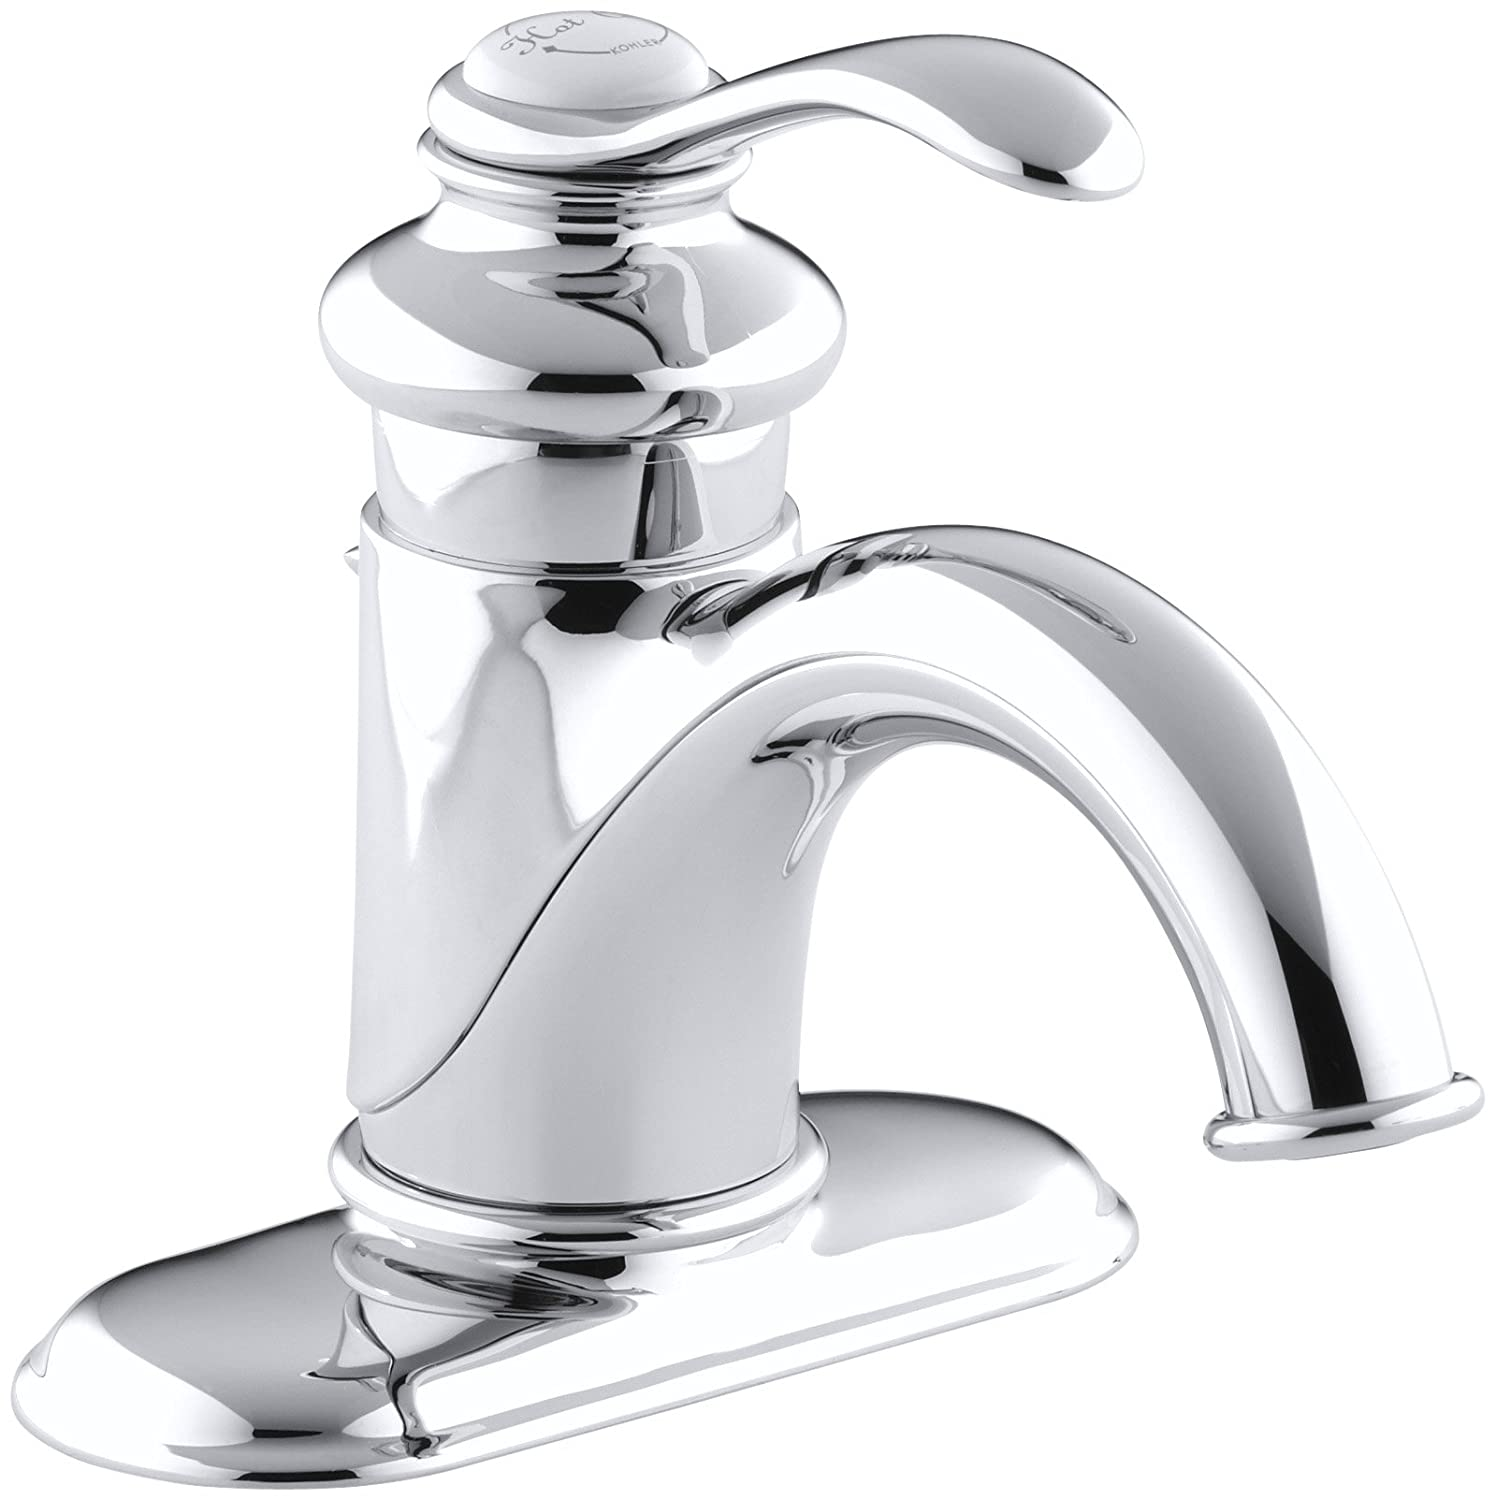 KOHLER KCP Fairfax In Centerset Bathroom Sink Faucet With - Kohler fairfax single hole bathroom faucet